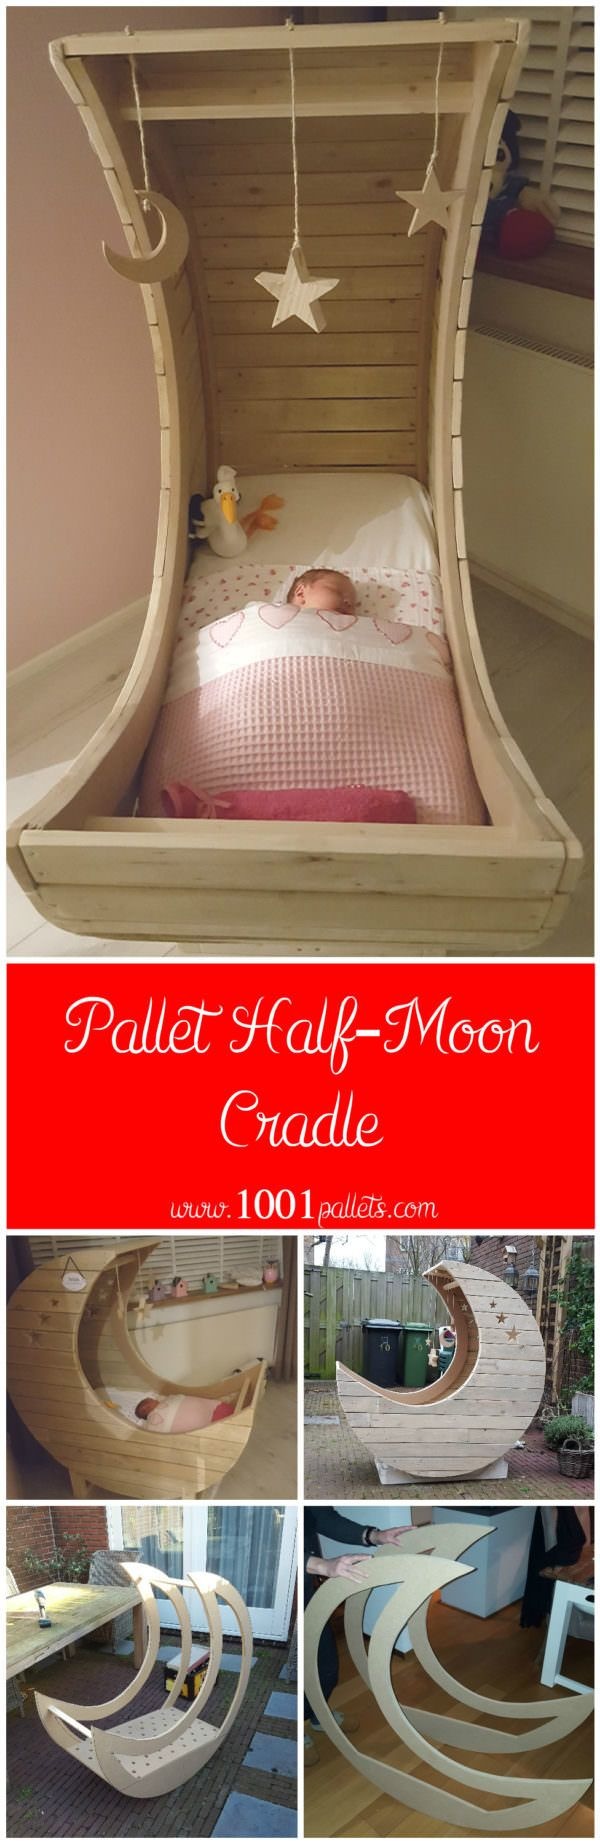 I+made+this+half-moon+cradle+from+used+pallets.+I+have+all+the+pallets+I+needed+from+my+work,+so+I+don't+know+how+much+pallets+exactly+are+in+it.+As+always+with+any+pallet+project+for+a+bedroom+and+even